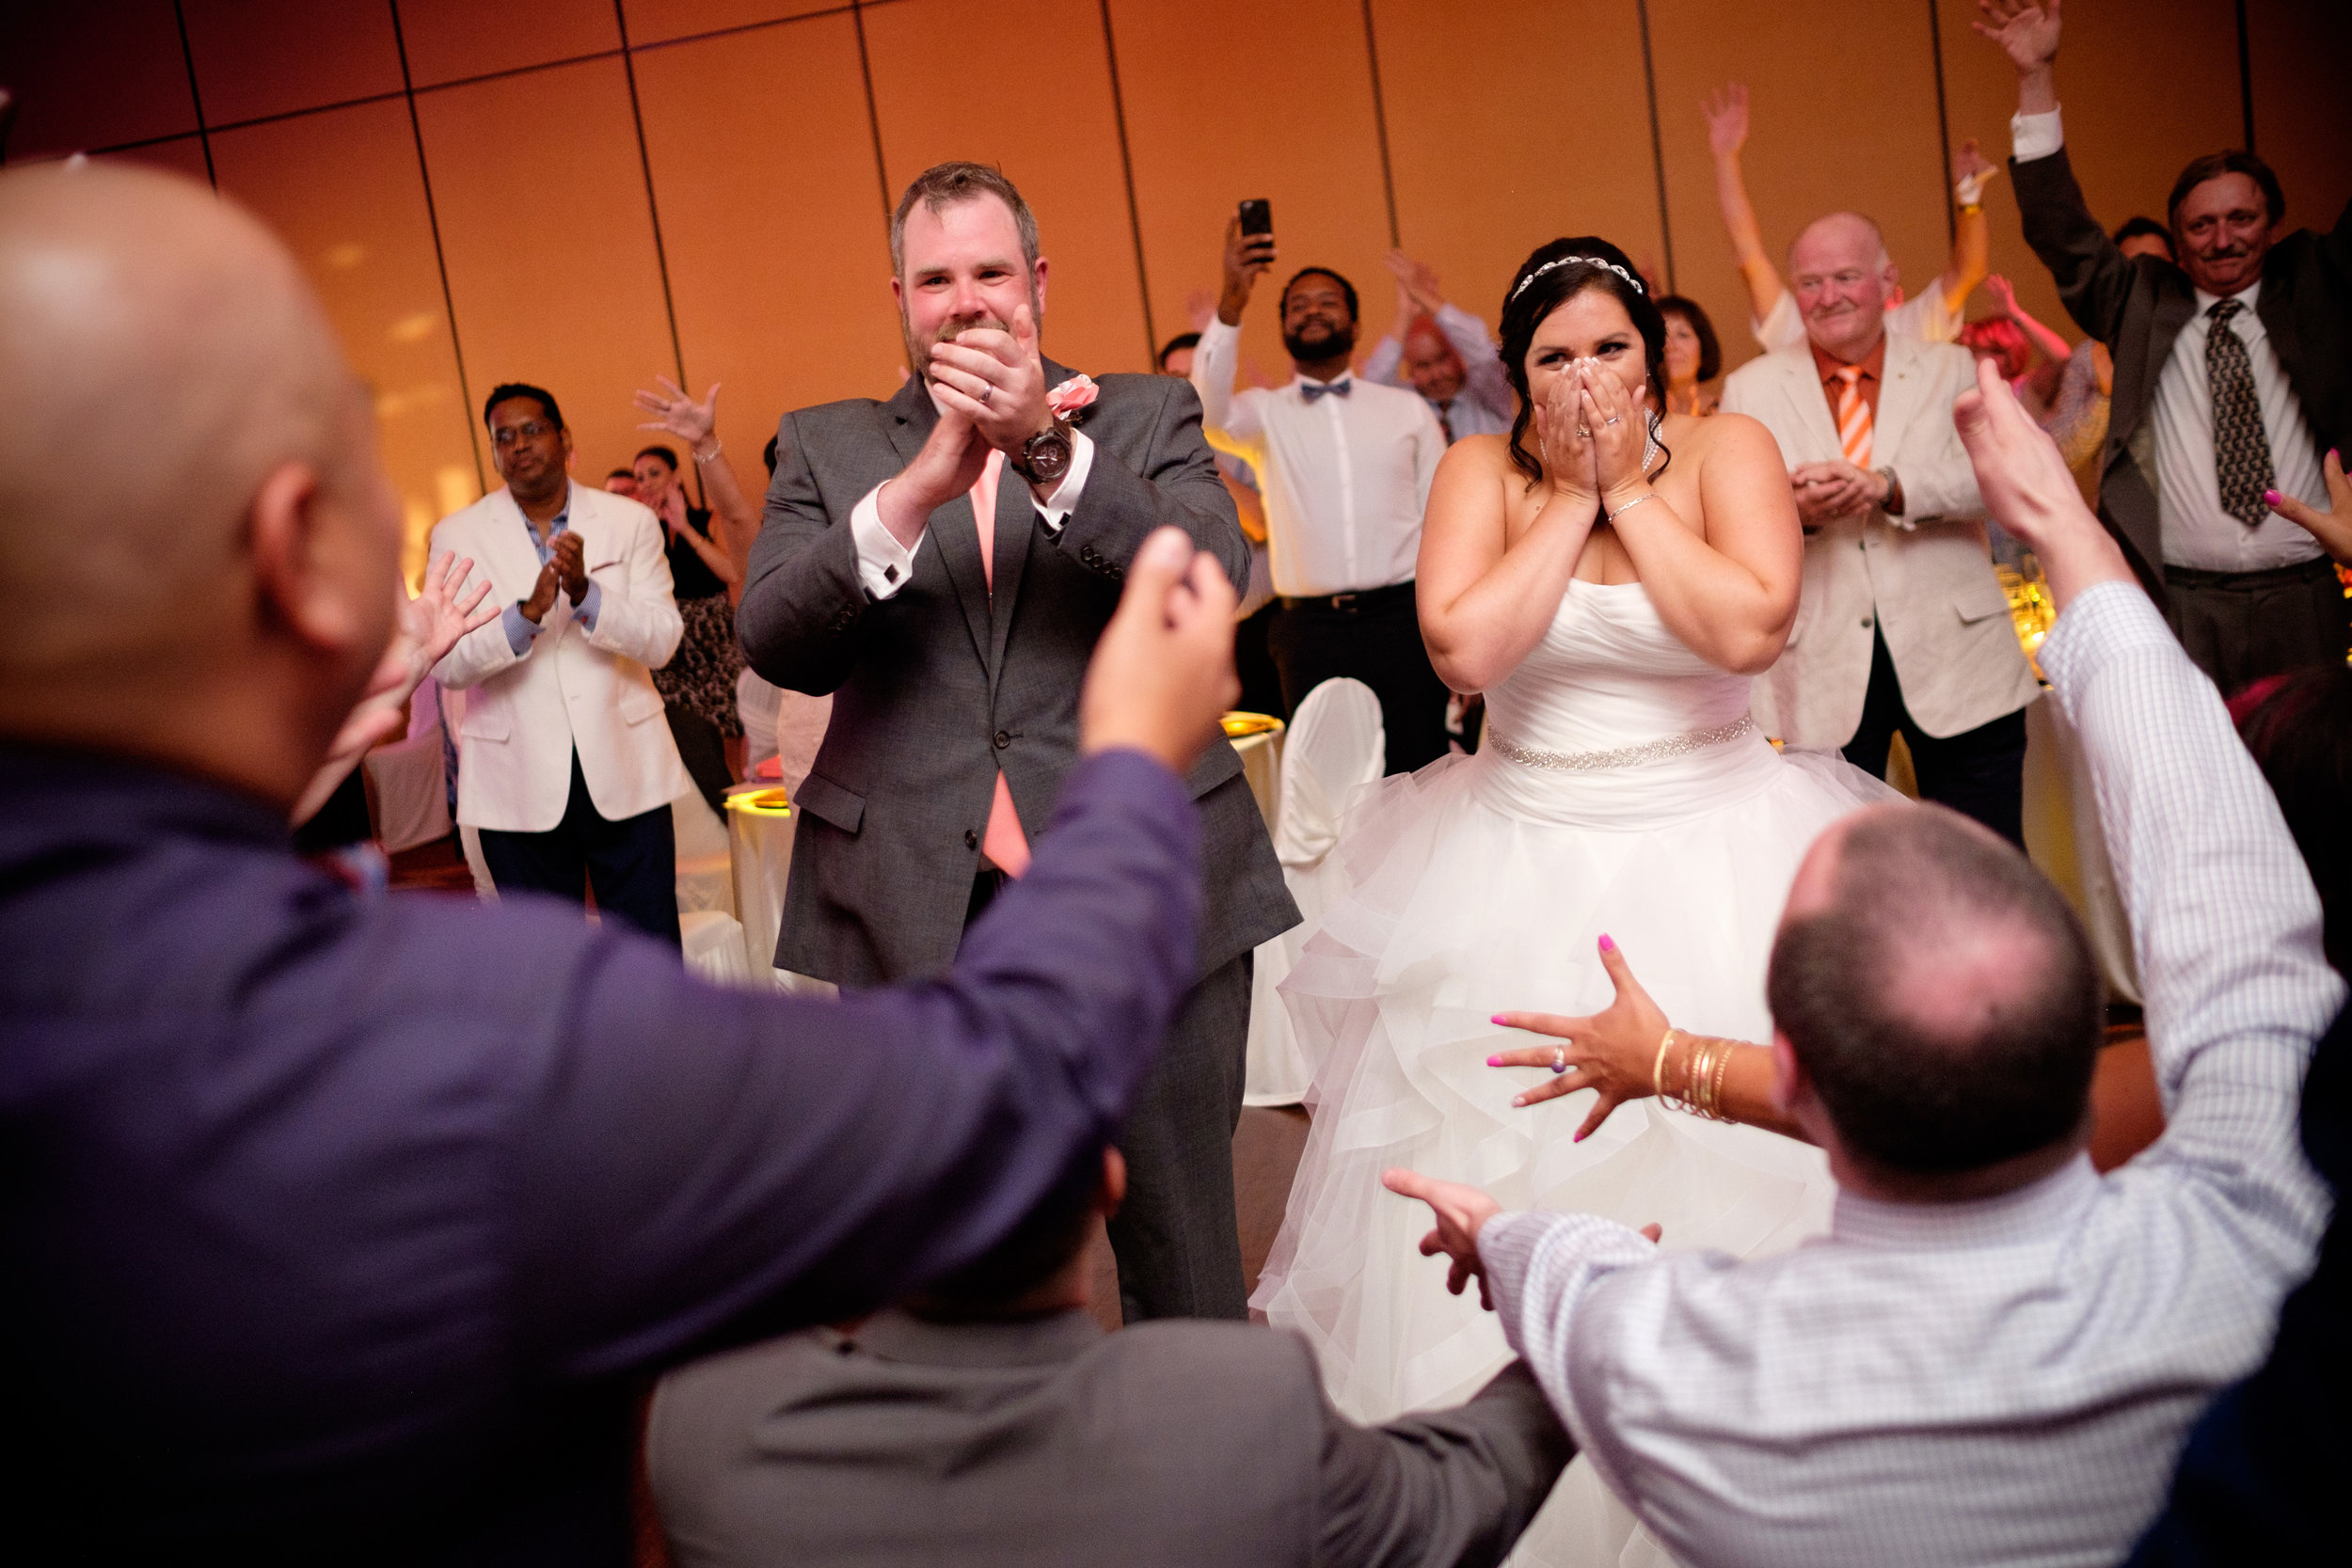 The bride and groom are surprised with a flash mob from their wedding guests during their Toronto wedding reception.